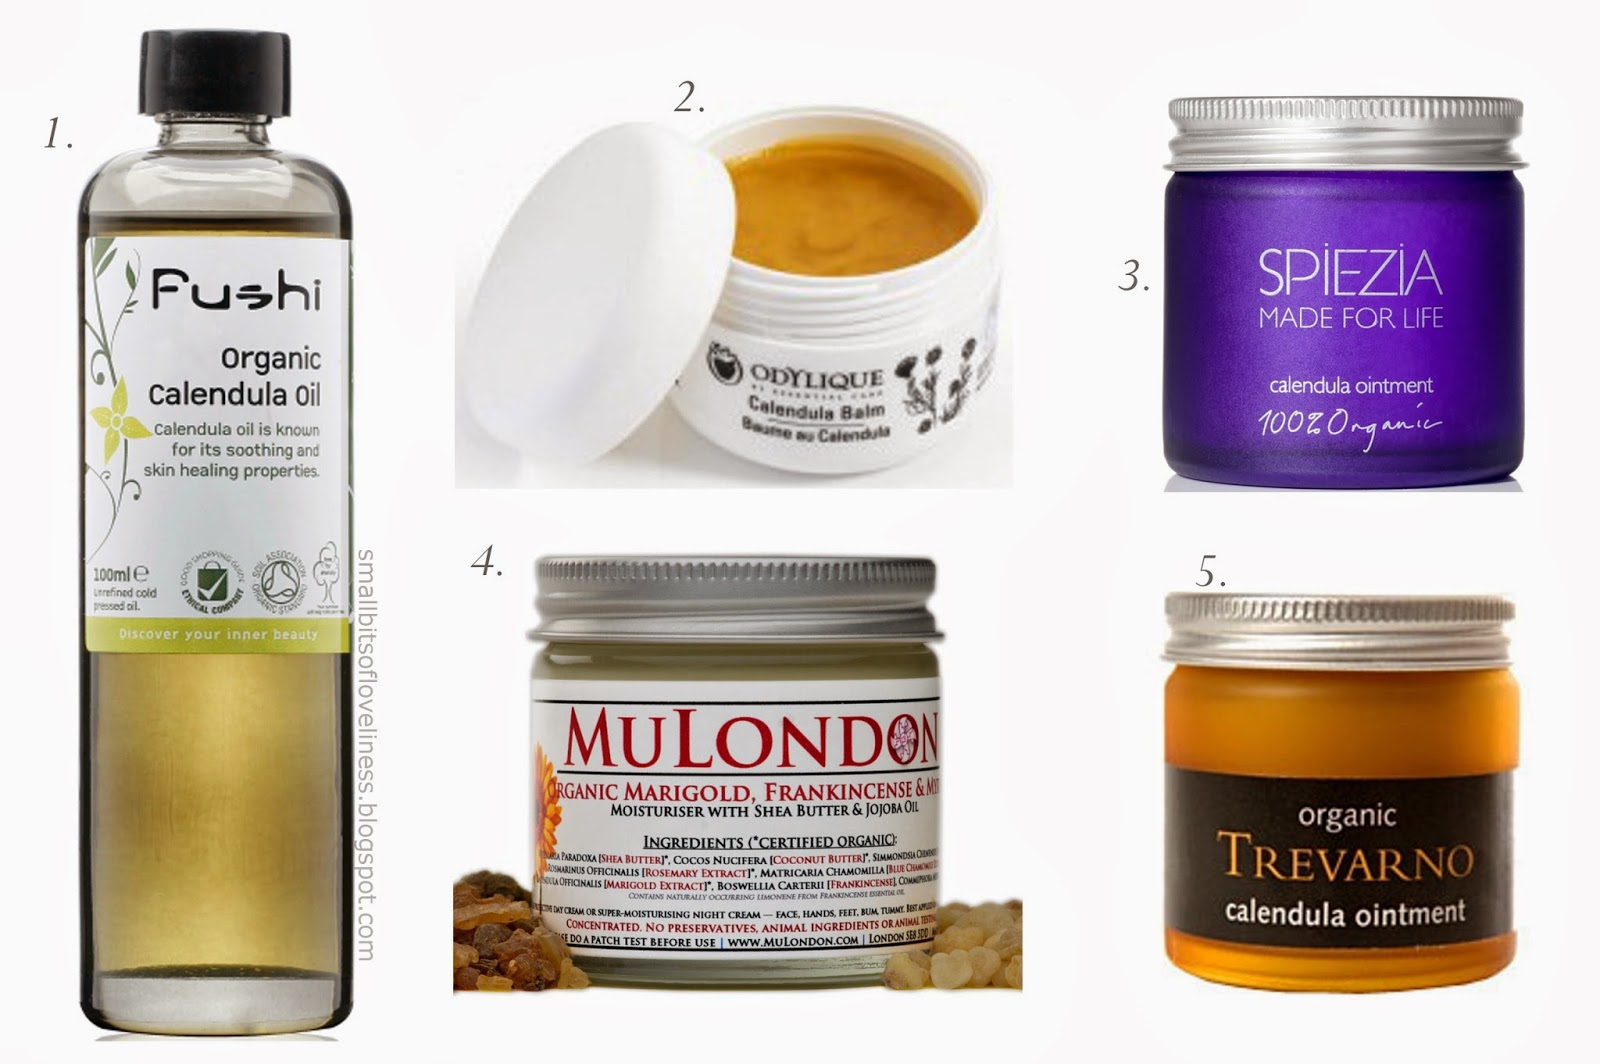 Products with Calendula, Fushi, Spiezia, Trevarno, MuLondon, Odylique